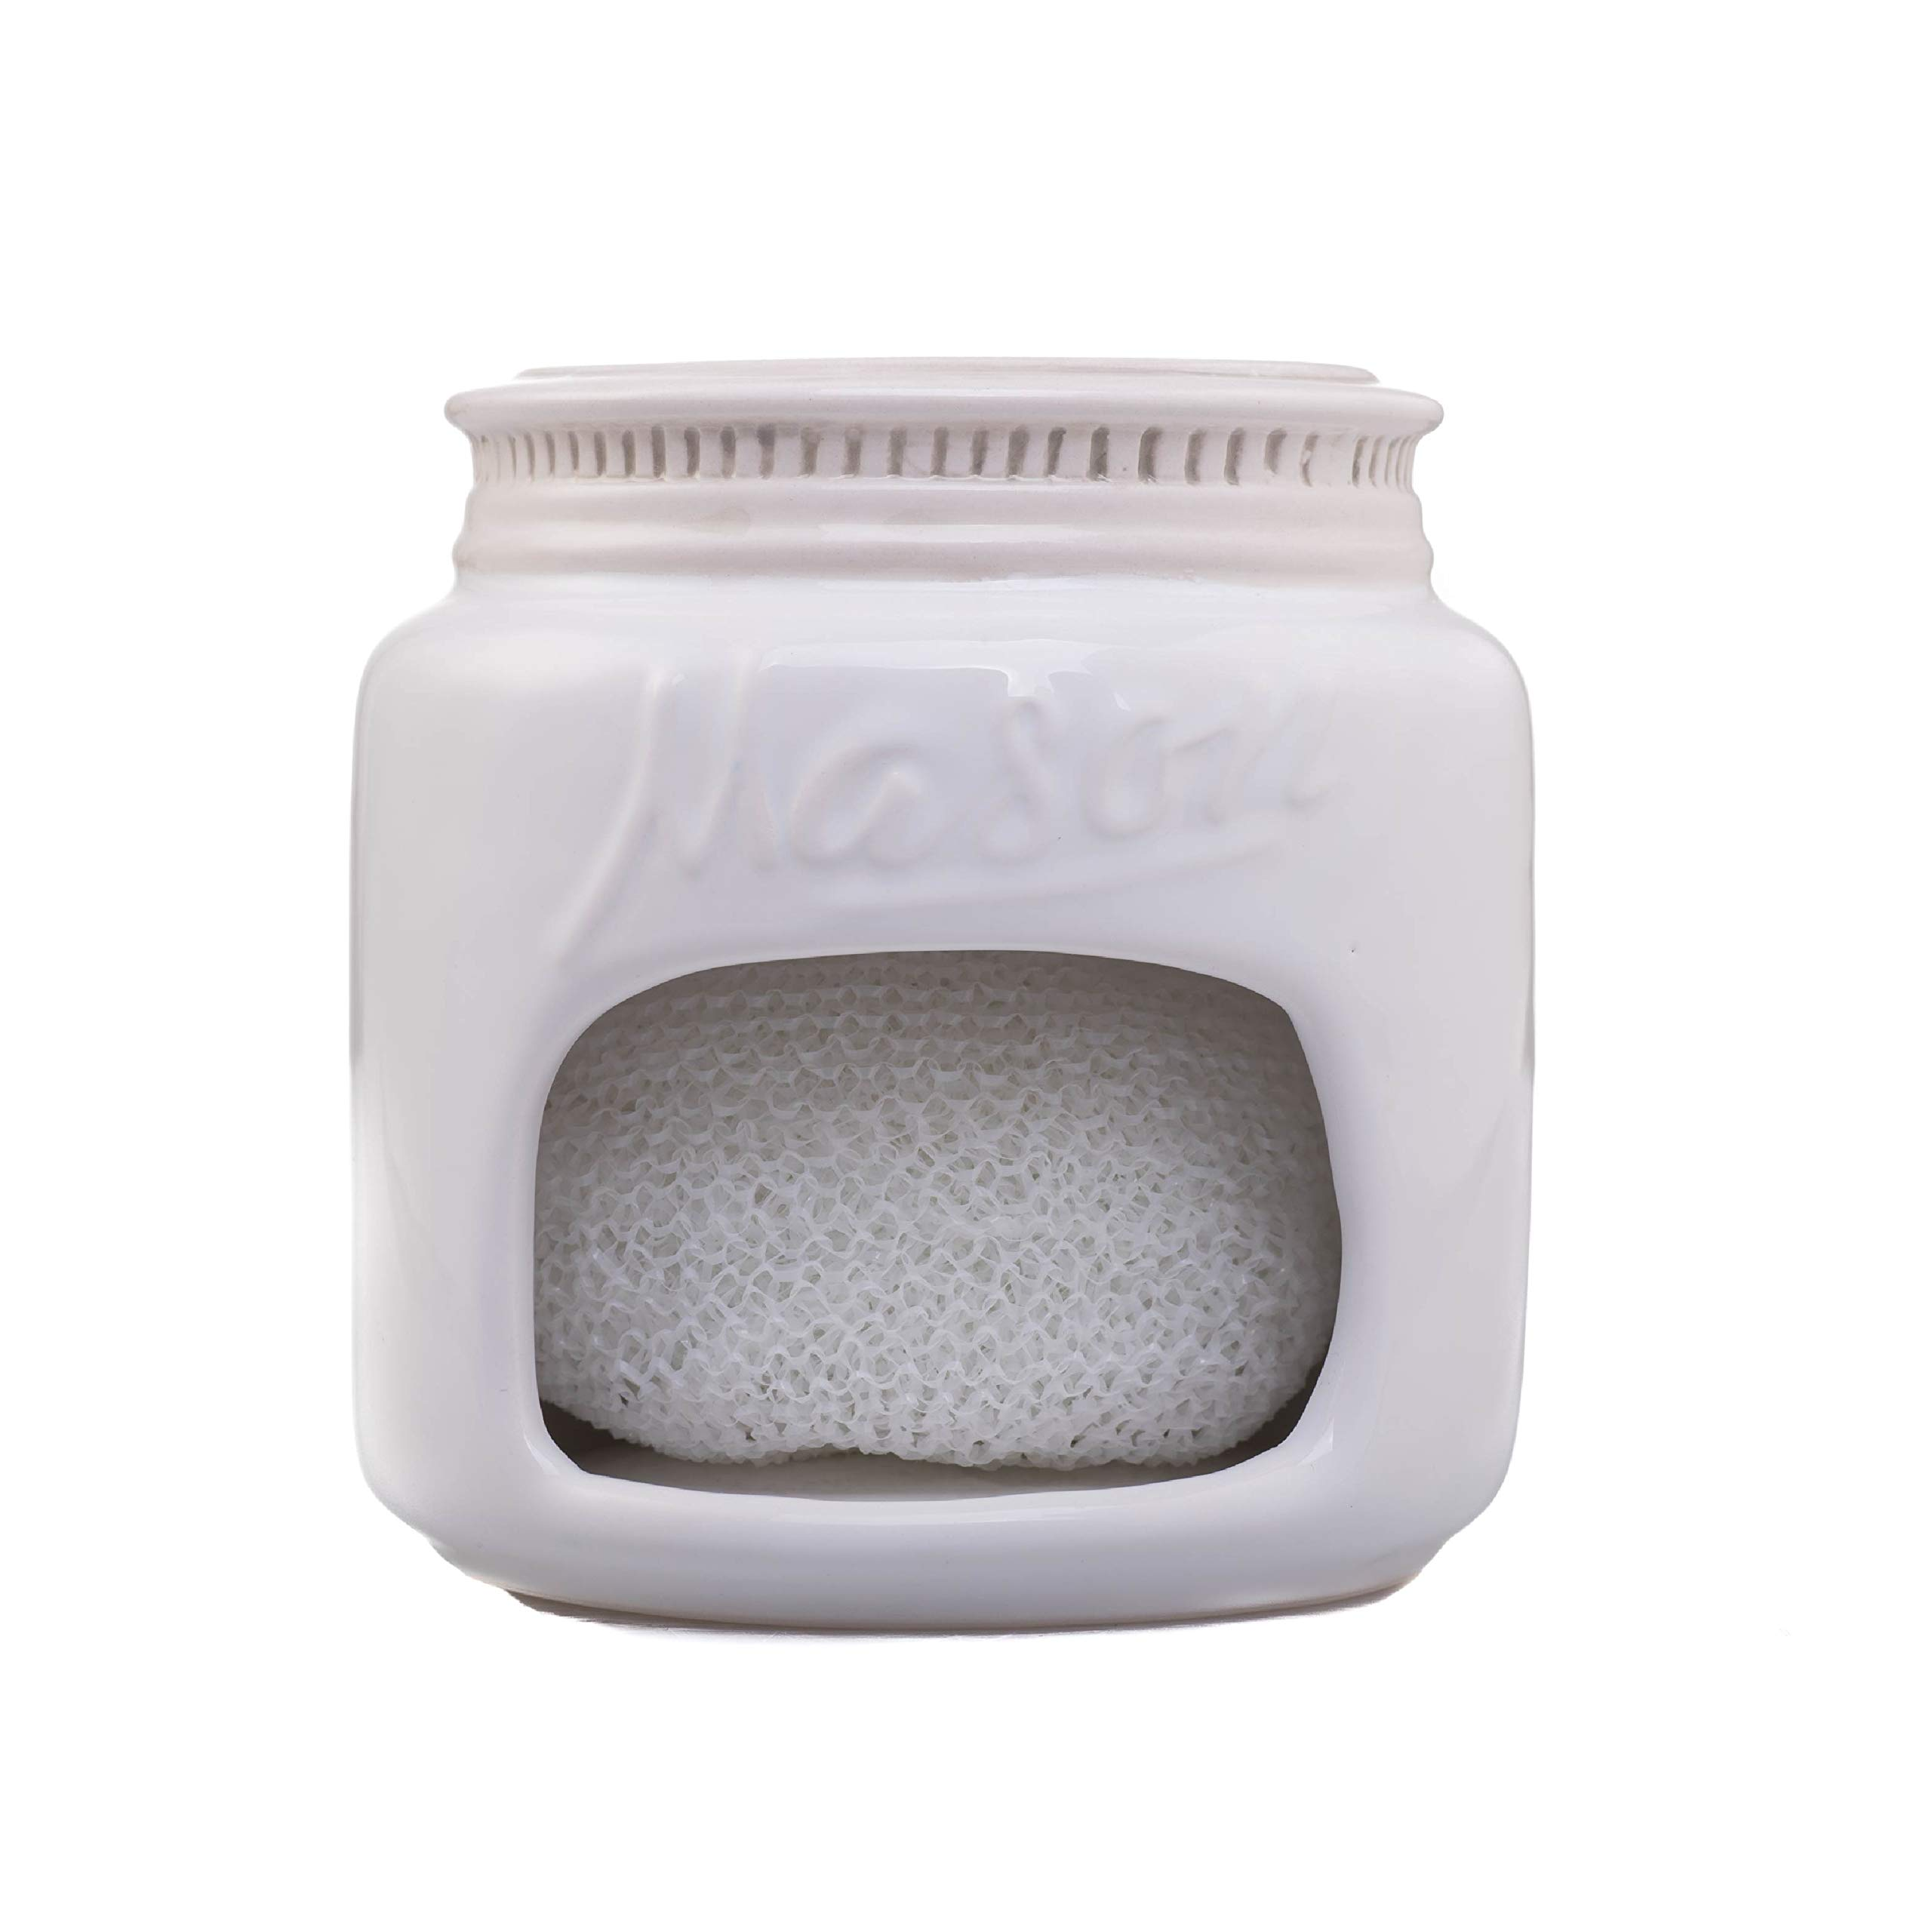 White Ceramic Mason Jar Kitchen Sponge Holder - Adorable Home Retro & Farmhouse Kitchen Decor - Amazing Rustic Accessory - Vintage Gift for Friends, Family and Collectors by Goodscious